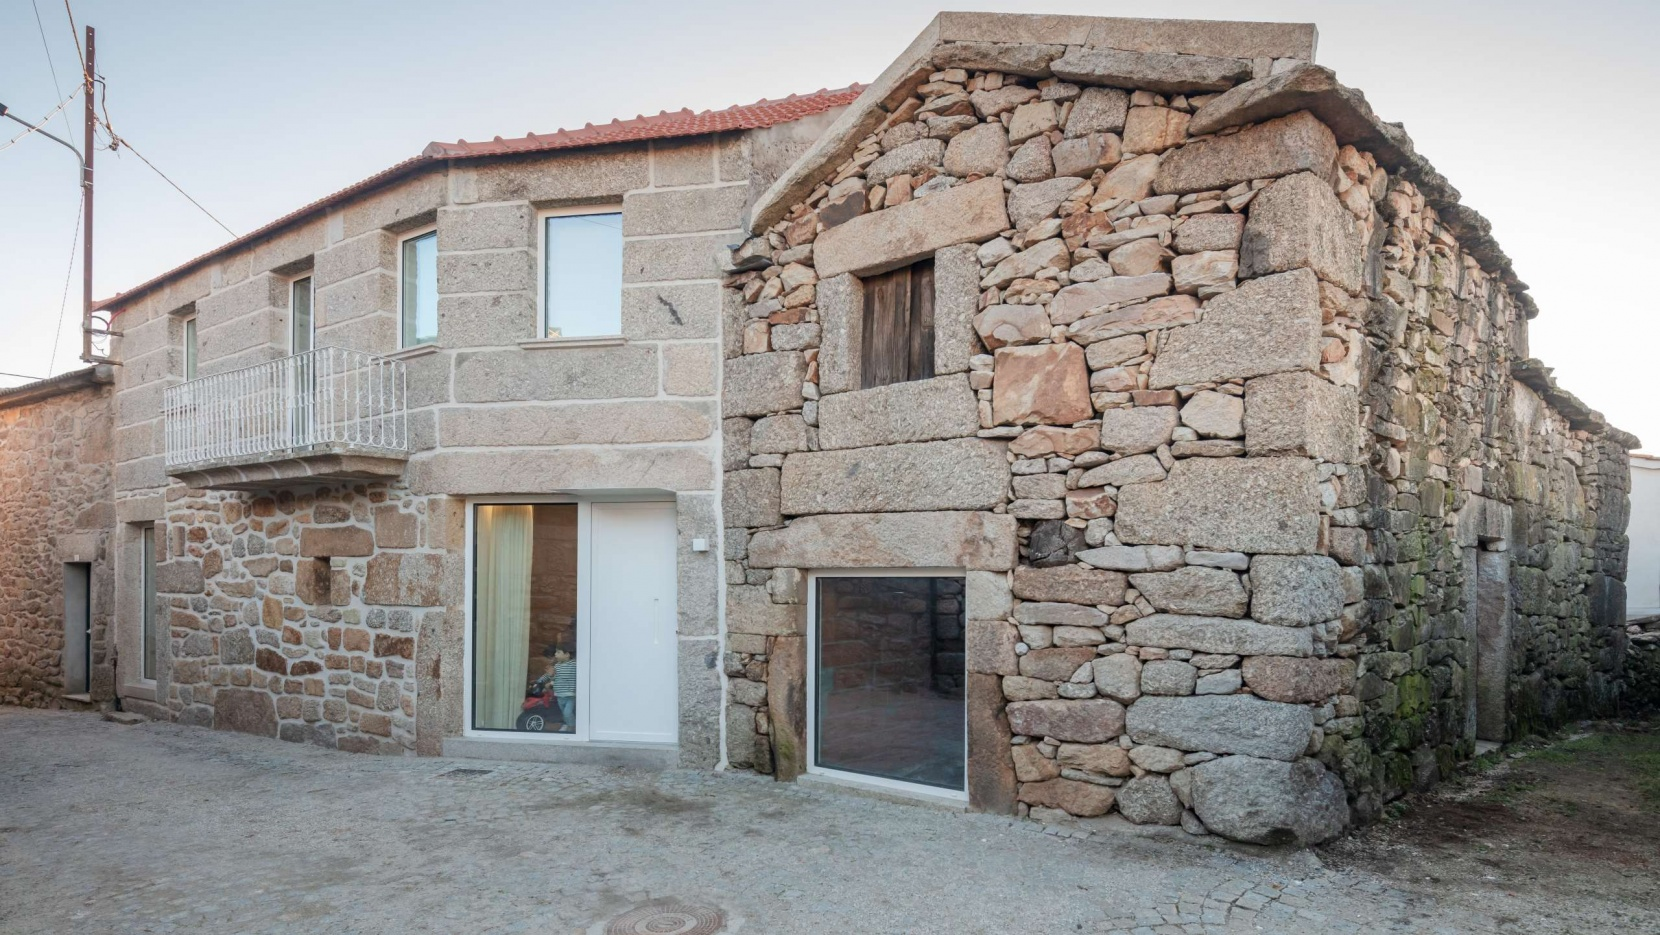 This house was originally built in 1940s of stone and nowadays it was restored and renovated for contemporary living